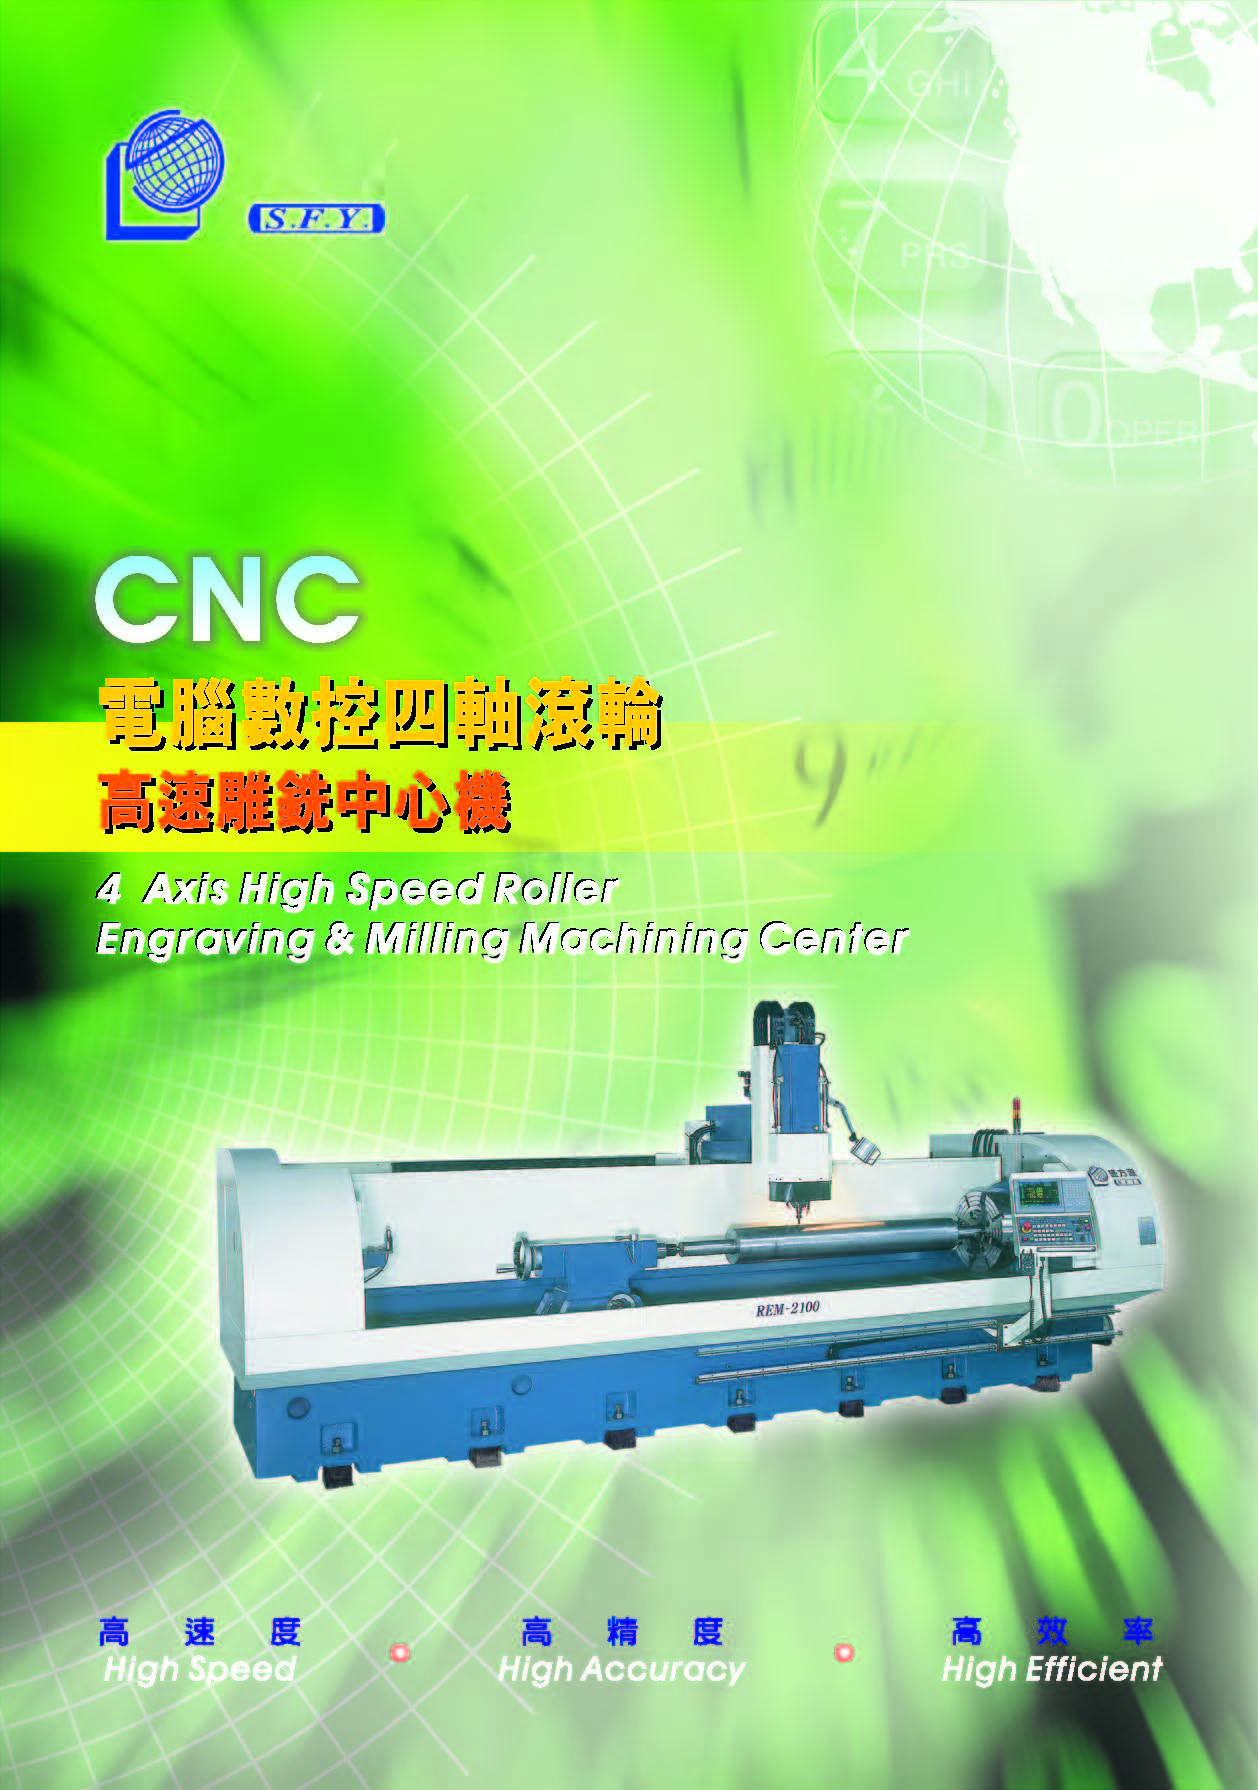 CNC 4 AXIS HIGH SPEED ROLLER ENGRAVING &MILLING MACHINING CENTER